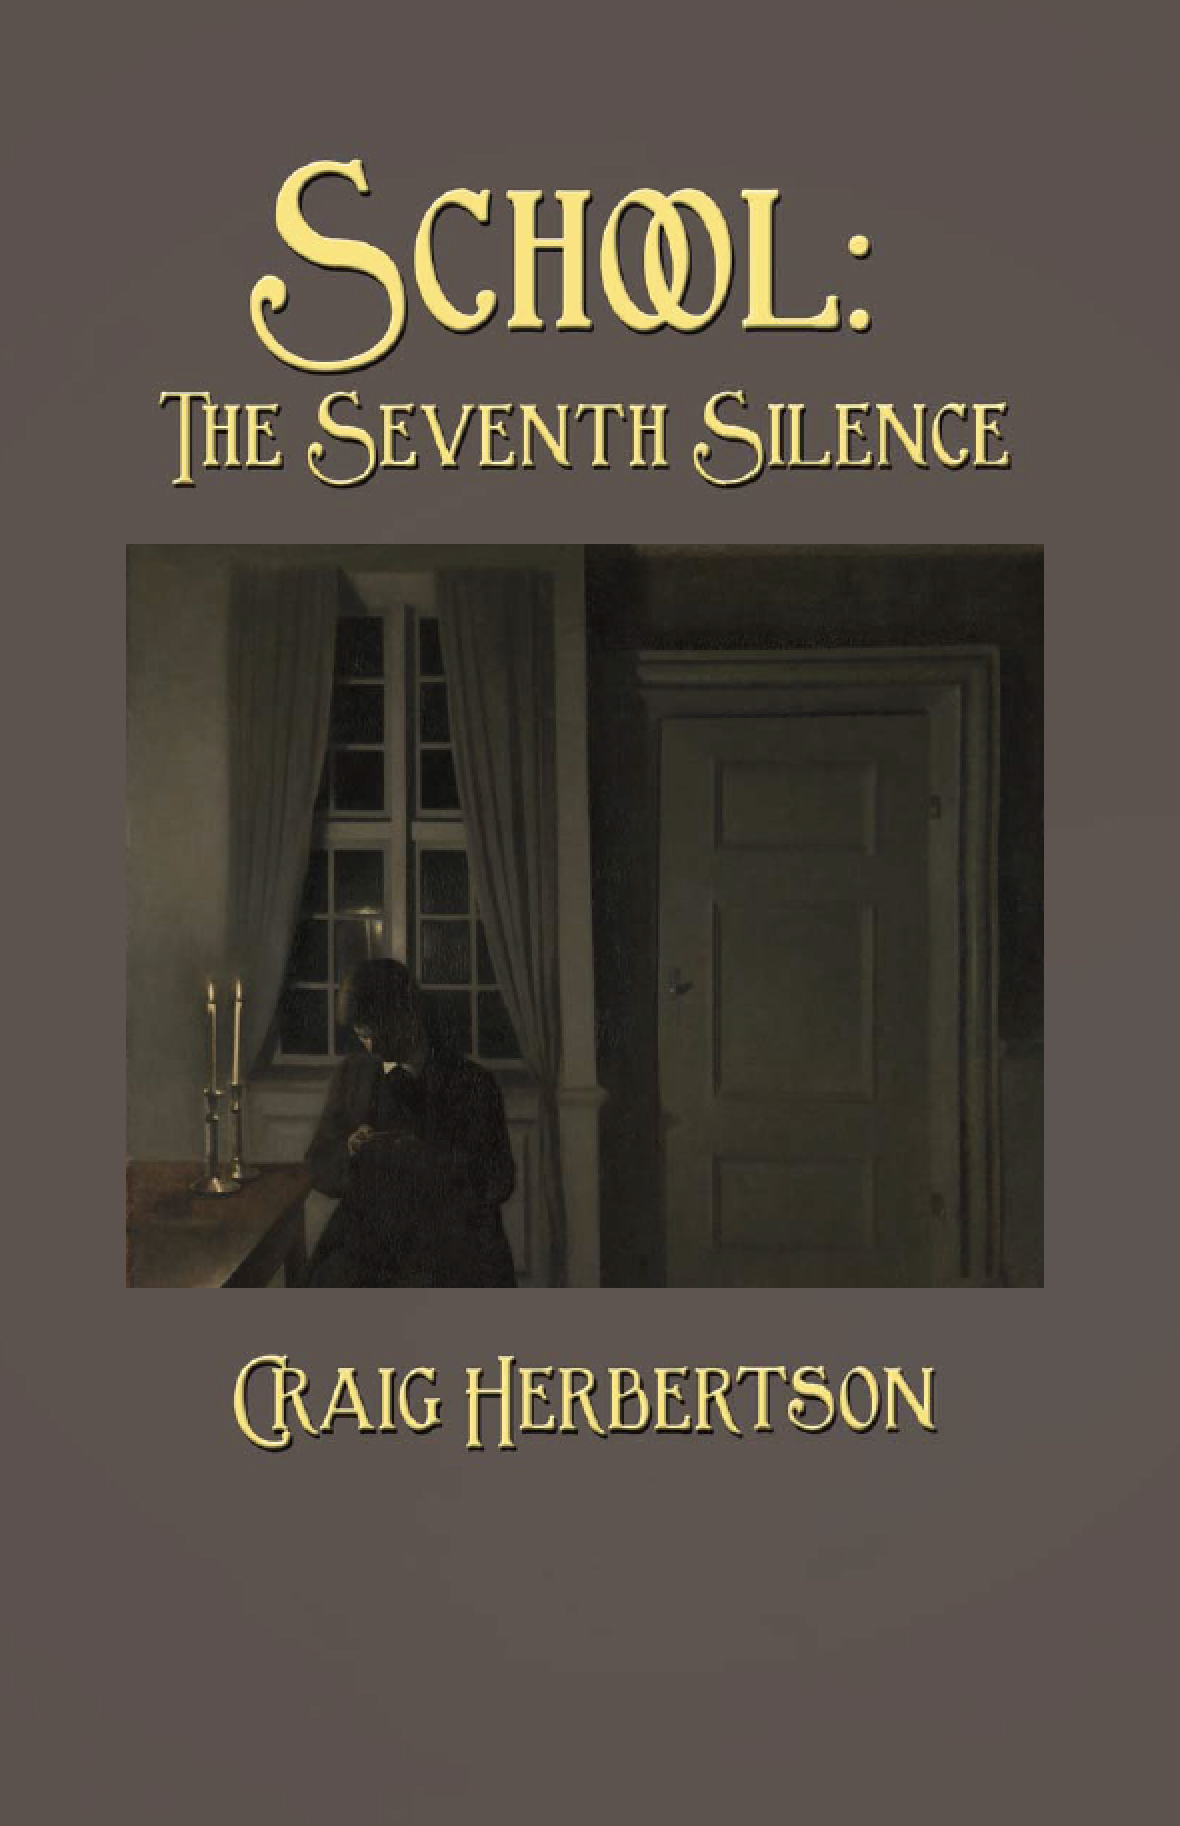 School: The Seventh Silence